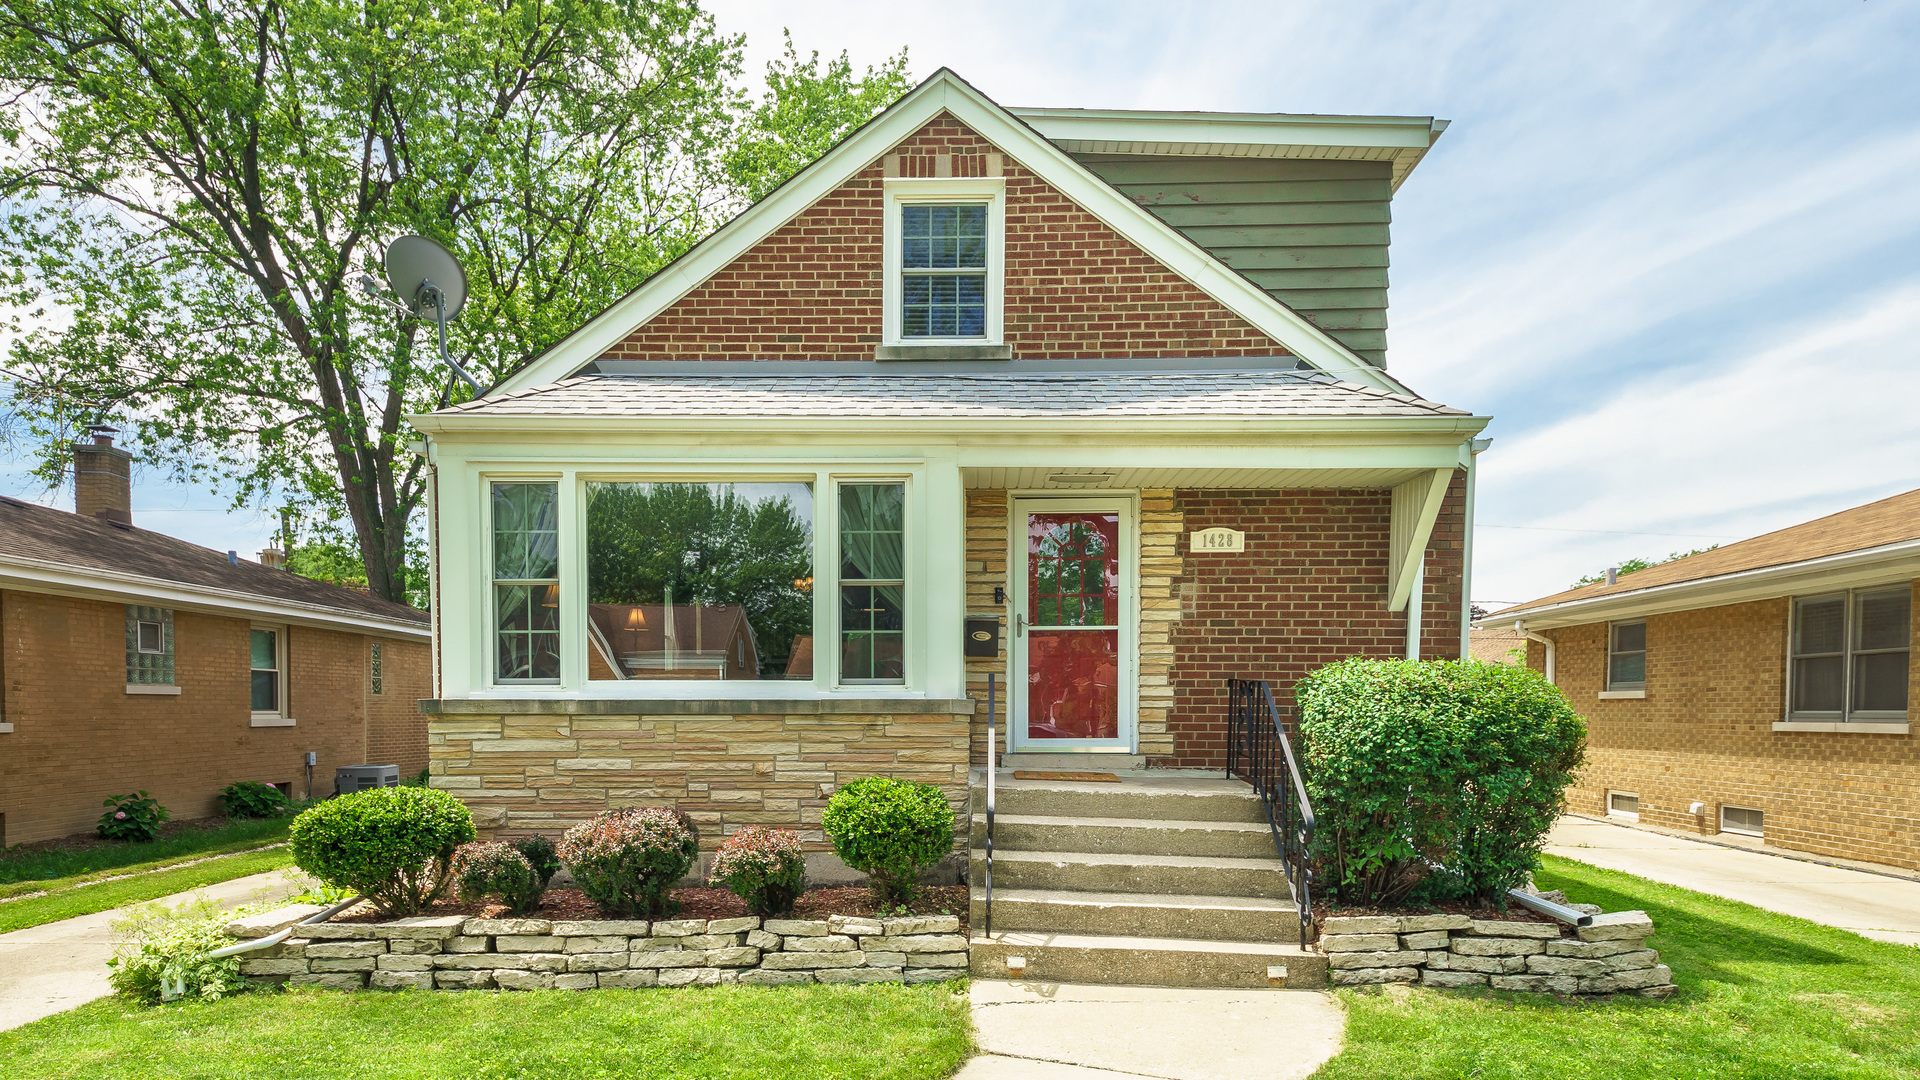 Property for sale at 1428 Alima Terrace, La Grange Park,  Il 60526